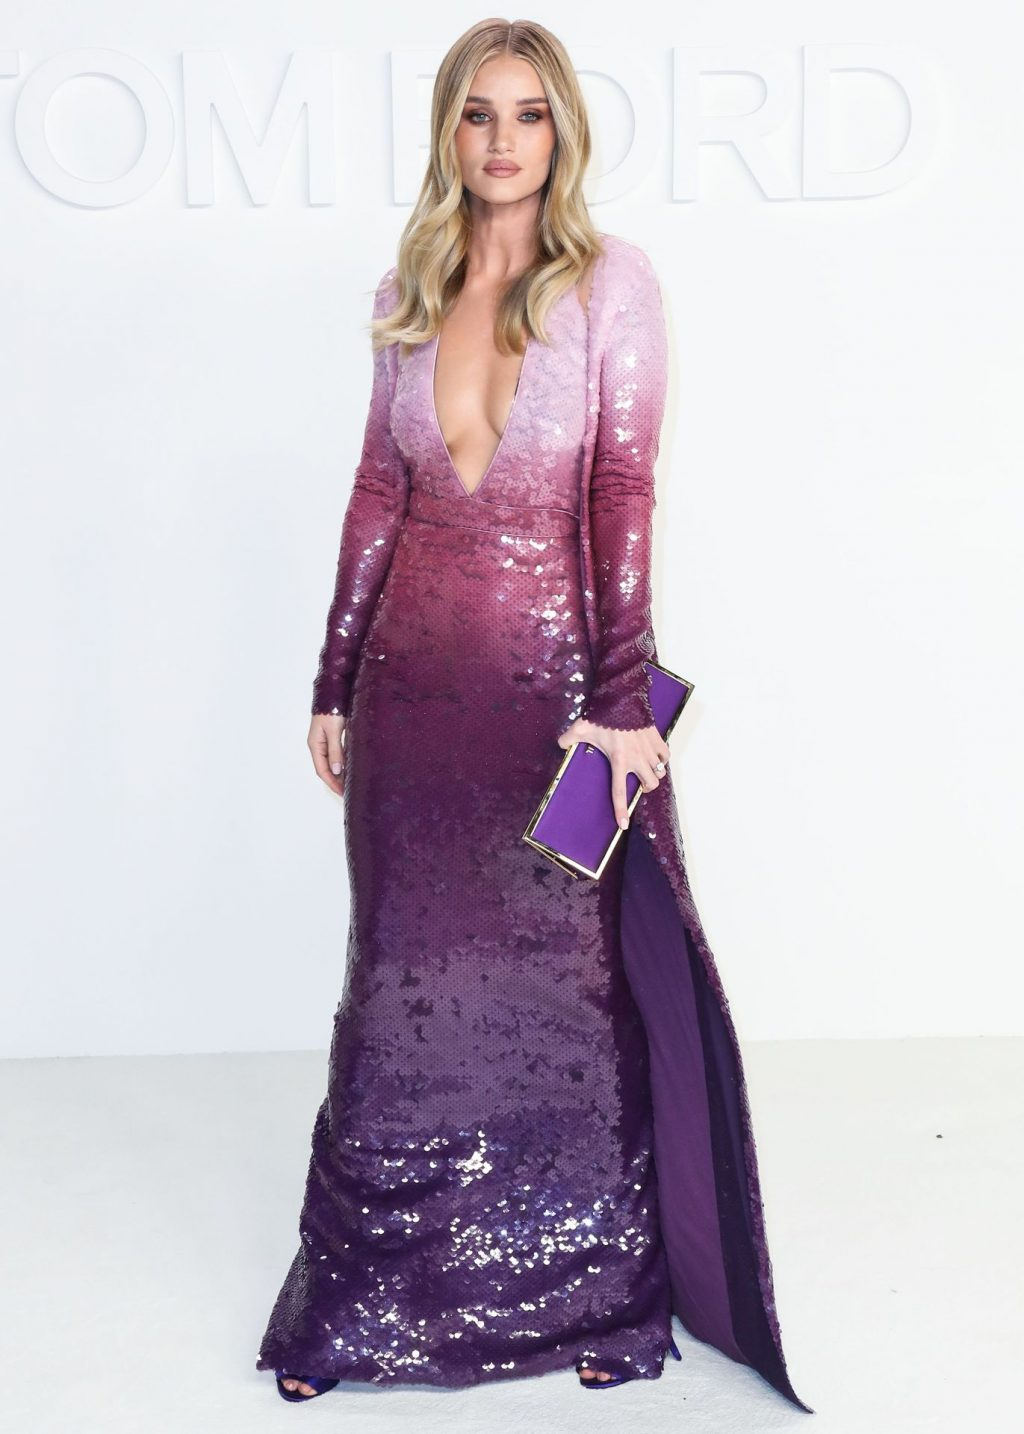 Rosie Huntington Whiteley Sexy The Fappening Blog 60 1024x1434 - Rosie Huntington-Whiteley Shows Her Cleavage at the Tom Ford Fashion Show (115 Photos)